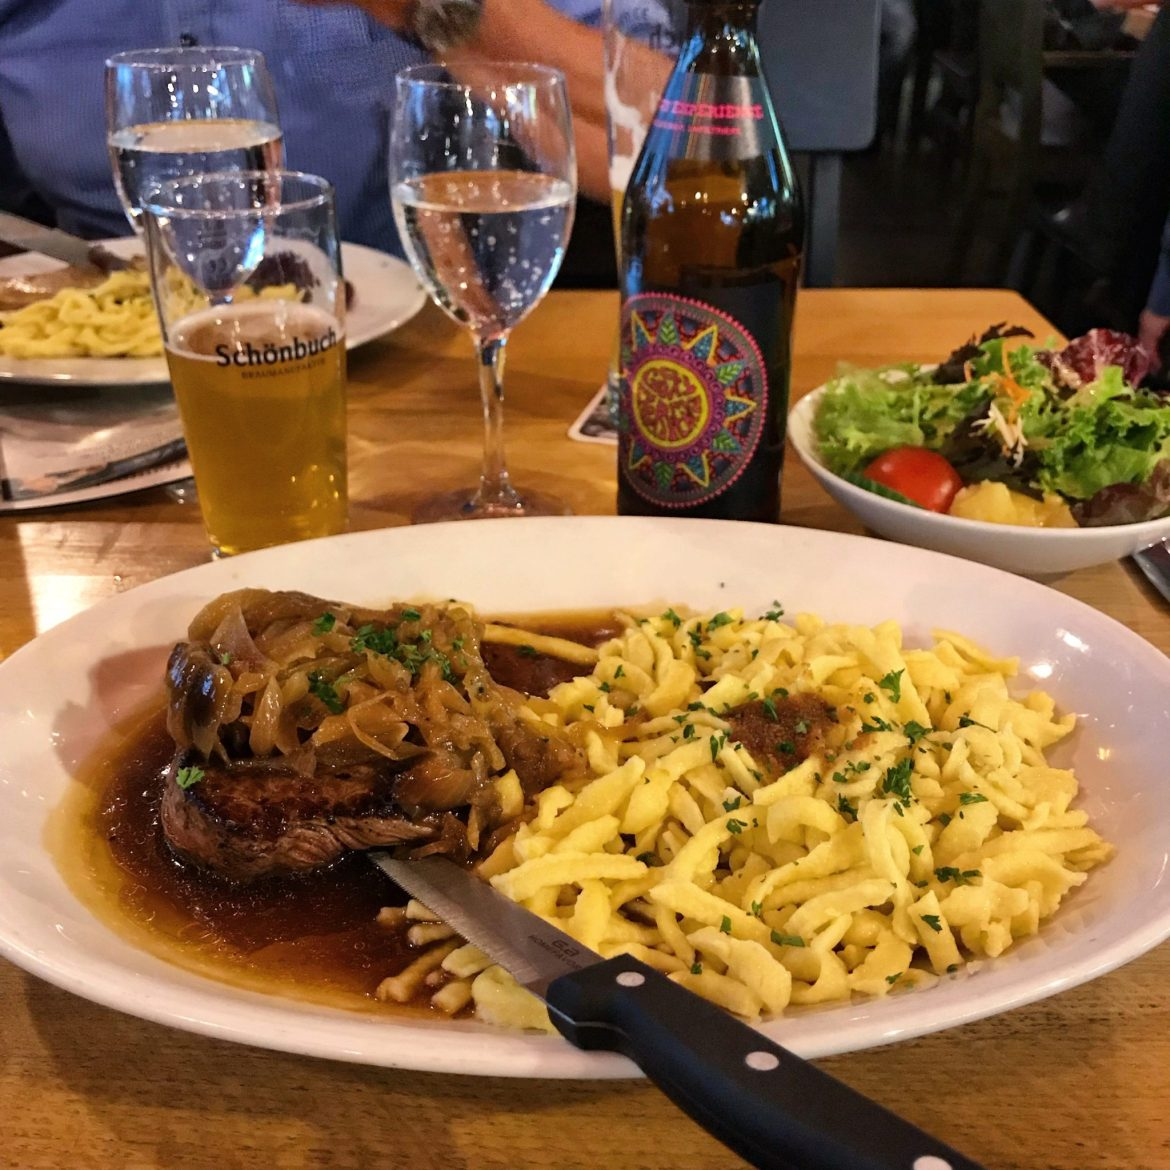 An oval white plate filled with steak, Spätzle, onions and gravy in front of some beers